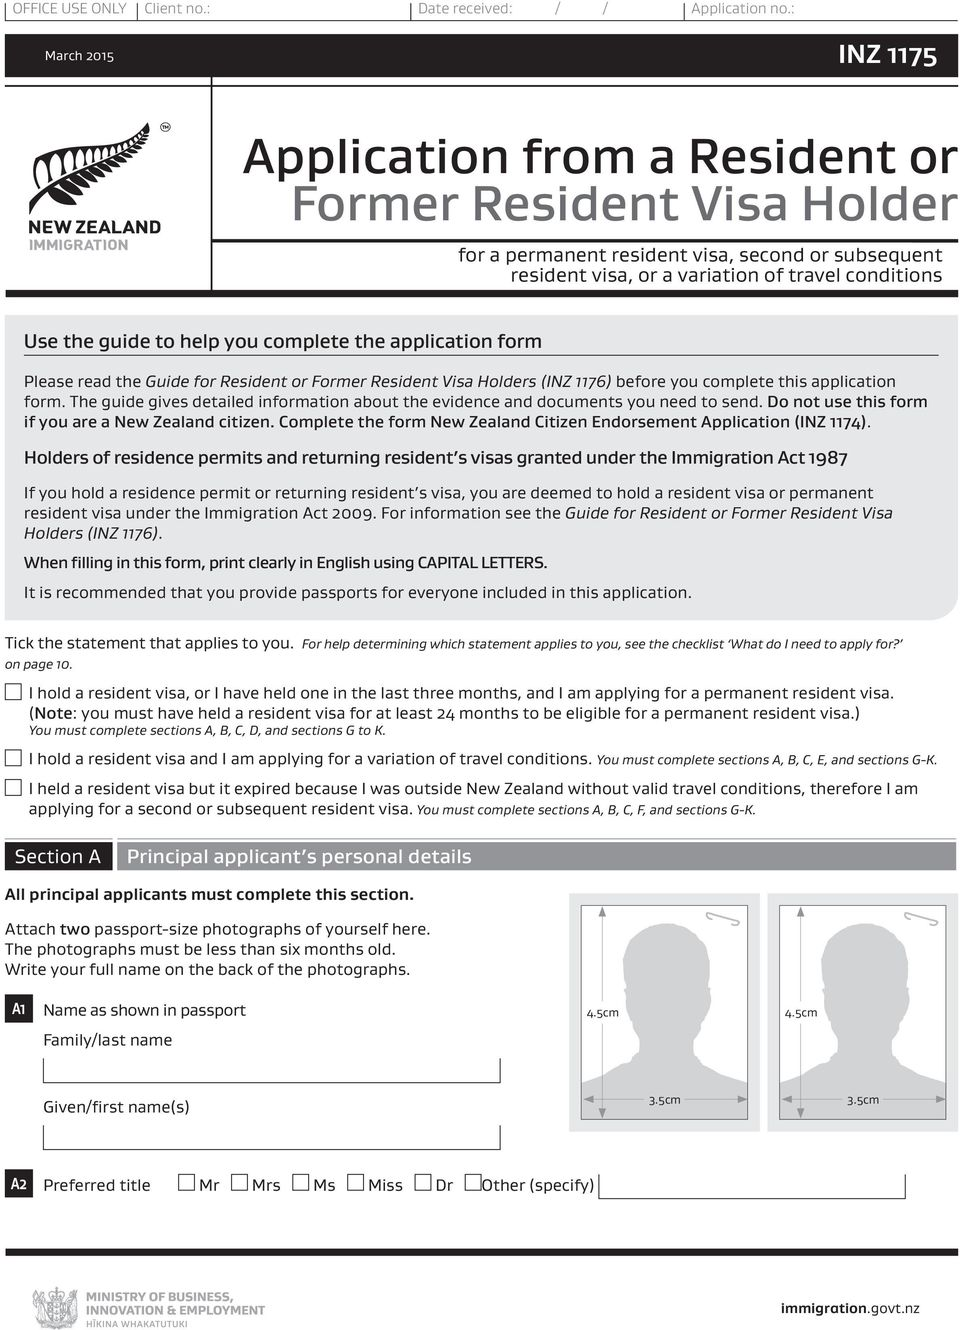 to help you complete the application form Please read the Guide for Resident or Former Resident Visa Holders (INZ 1176) before you complete this application form.